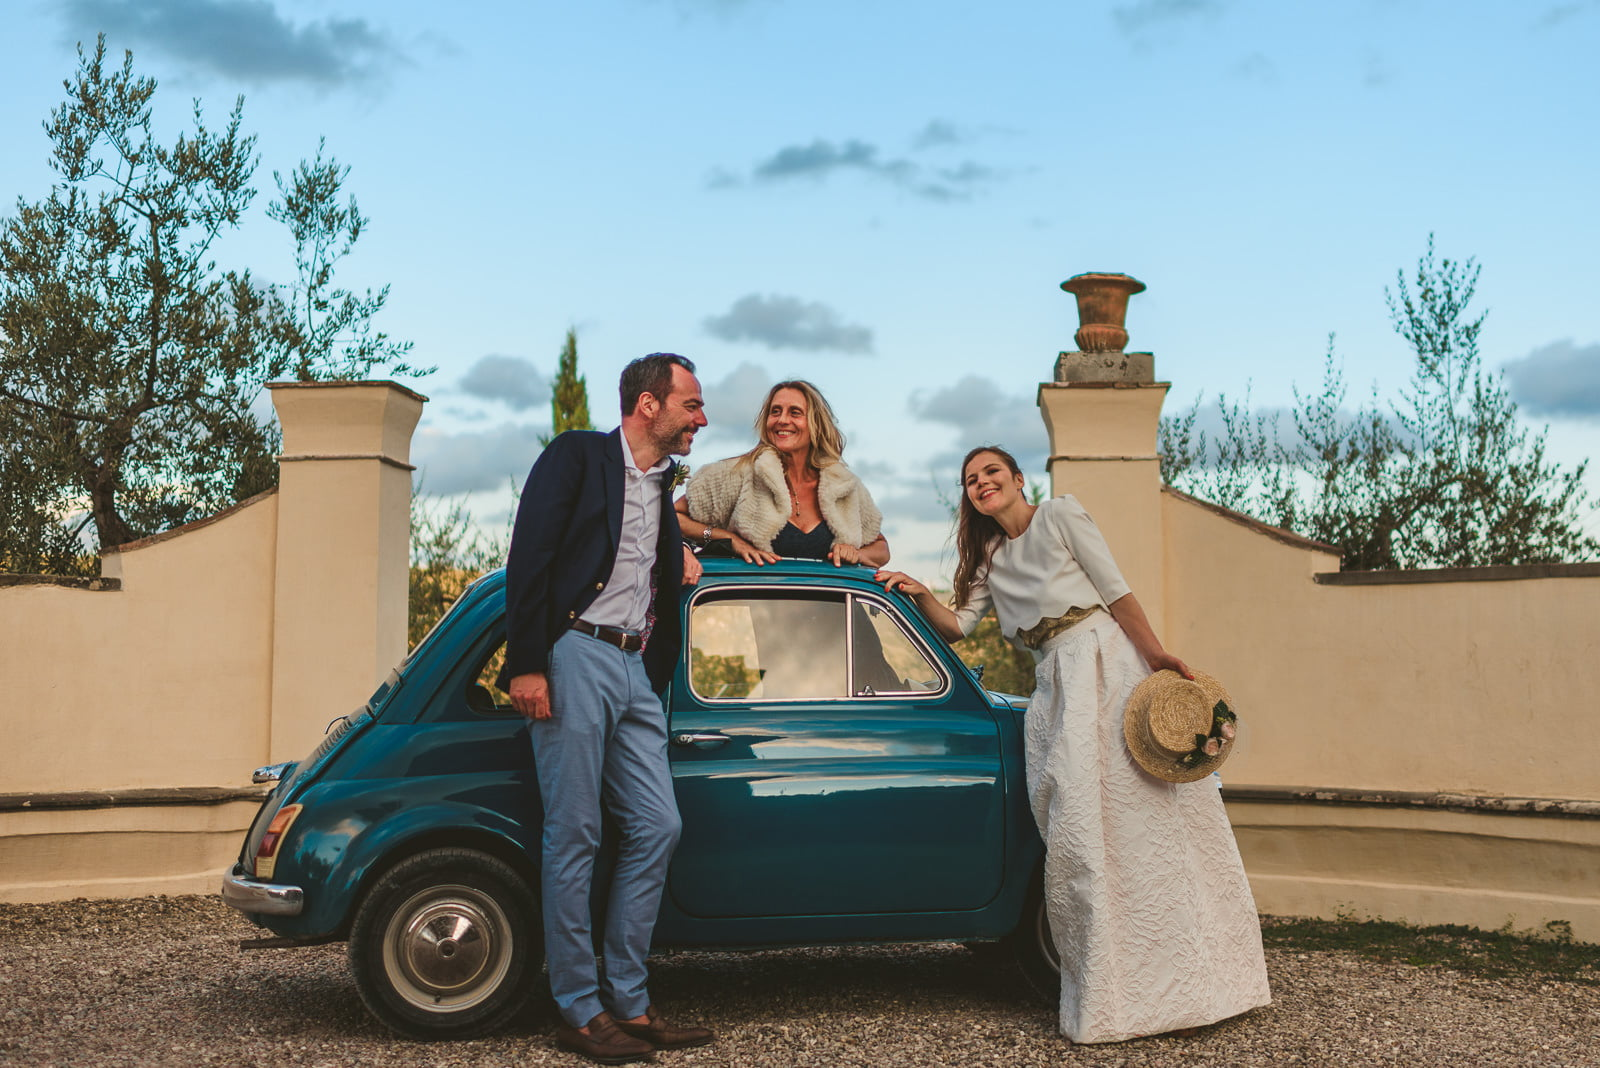 Lovely Wedding in Villa at Rignana by Federico Pannacci Wedding Photographer 121